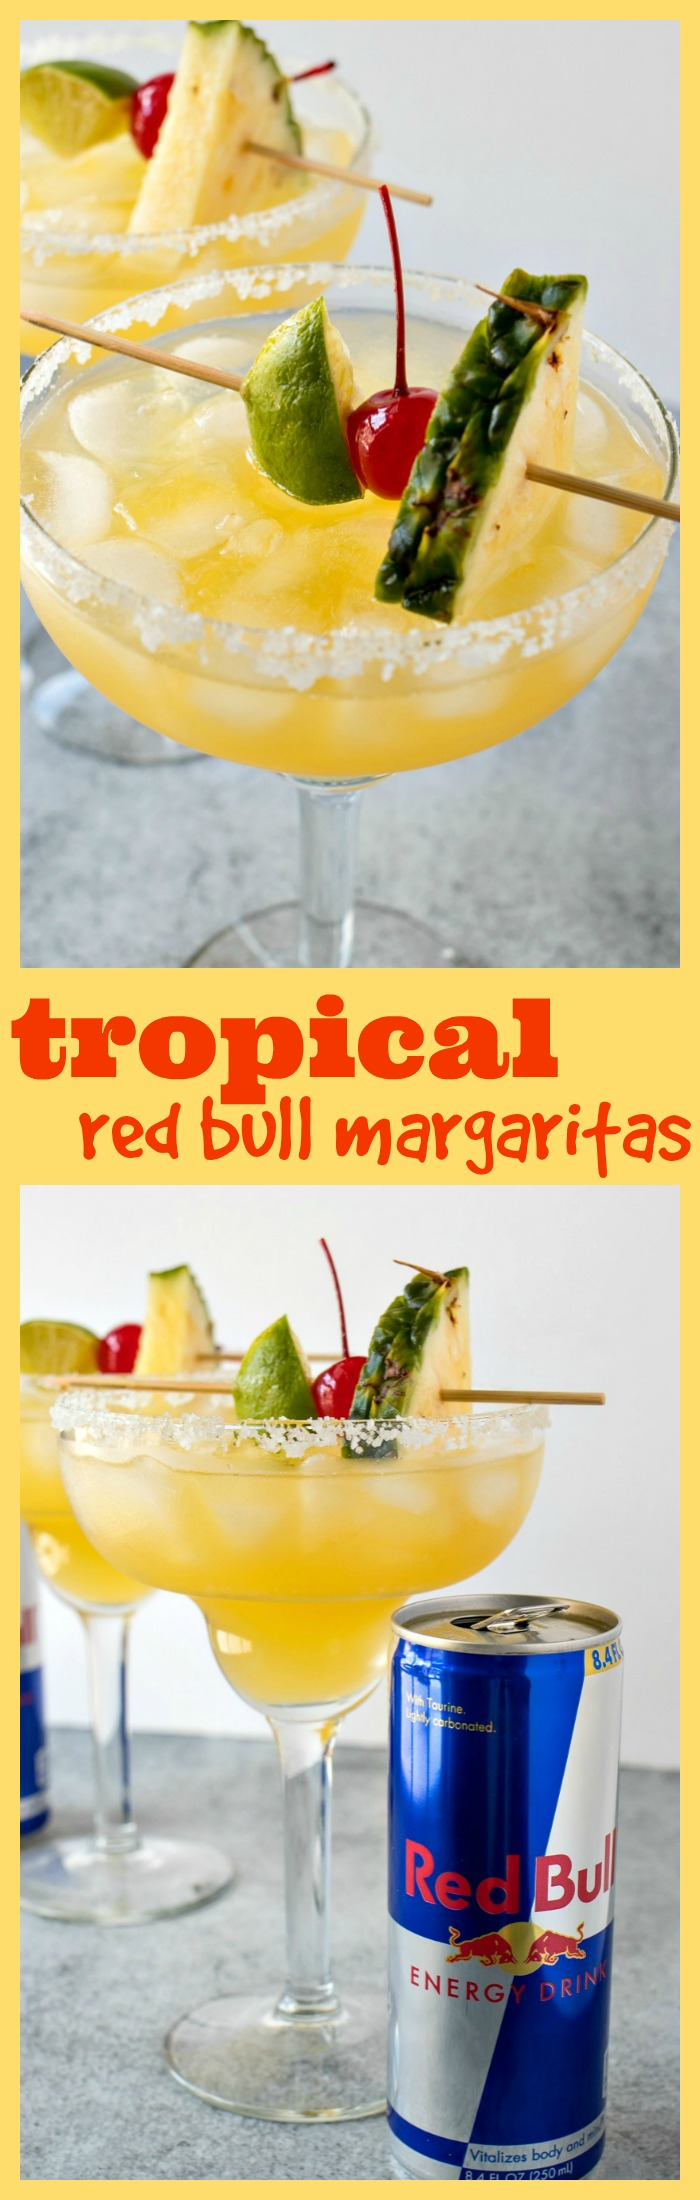 Tropical Red Bull Margaritas photo collage